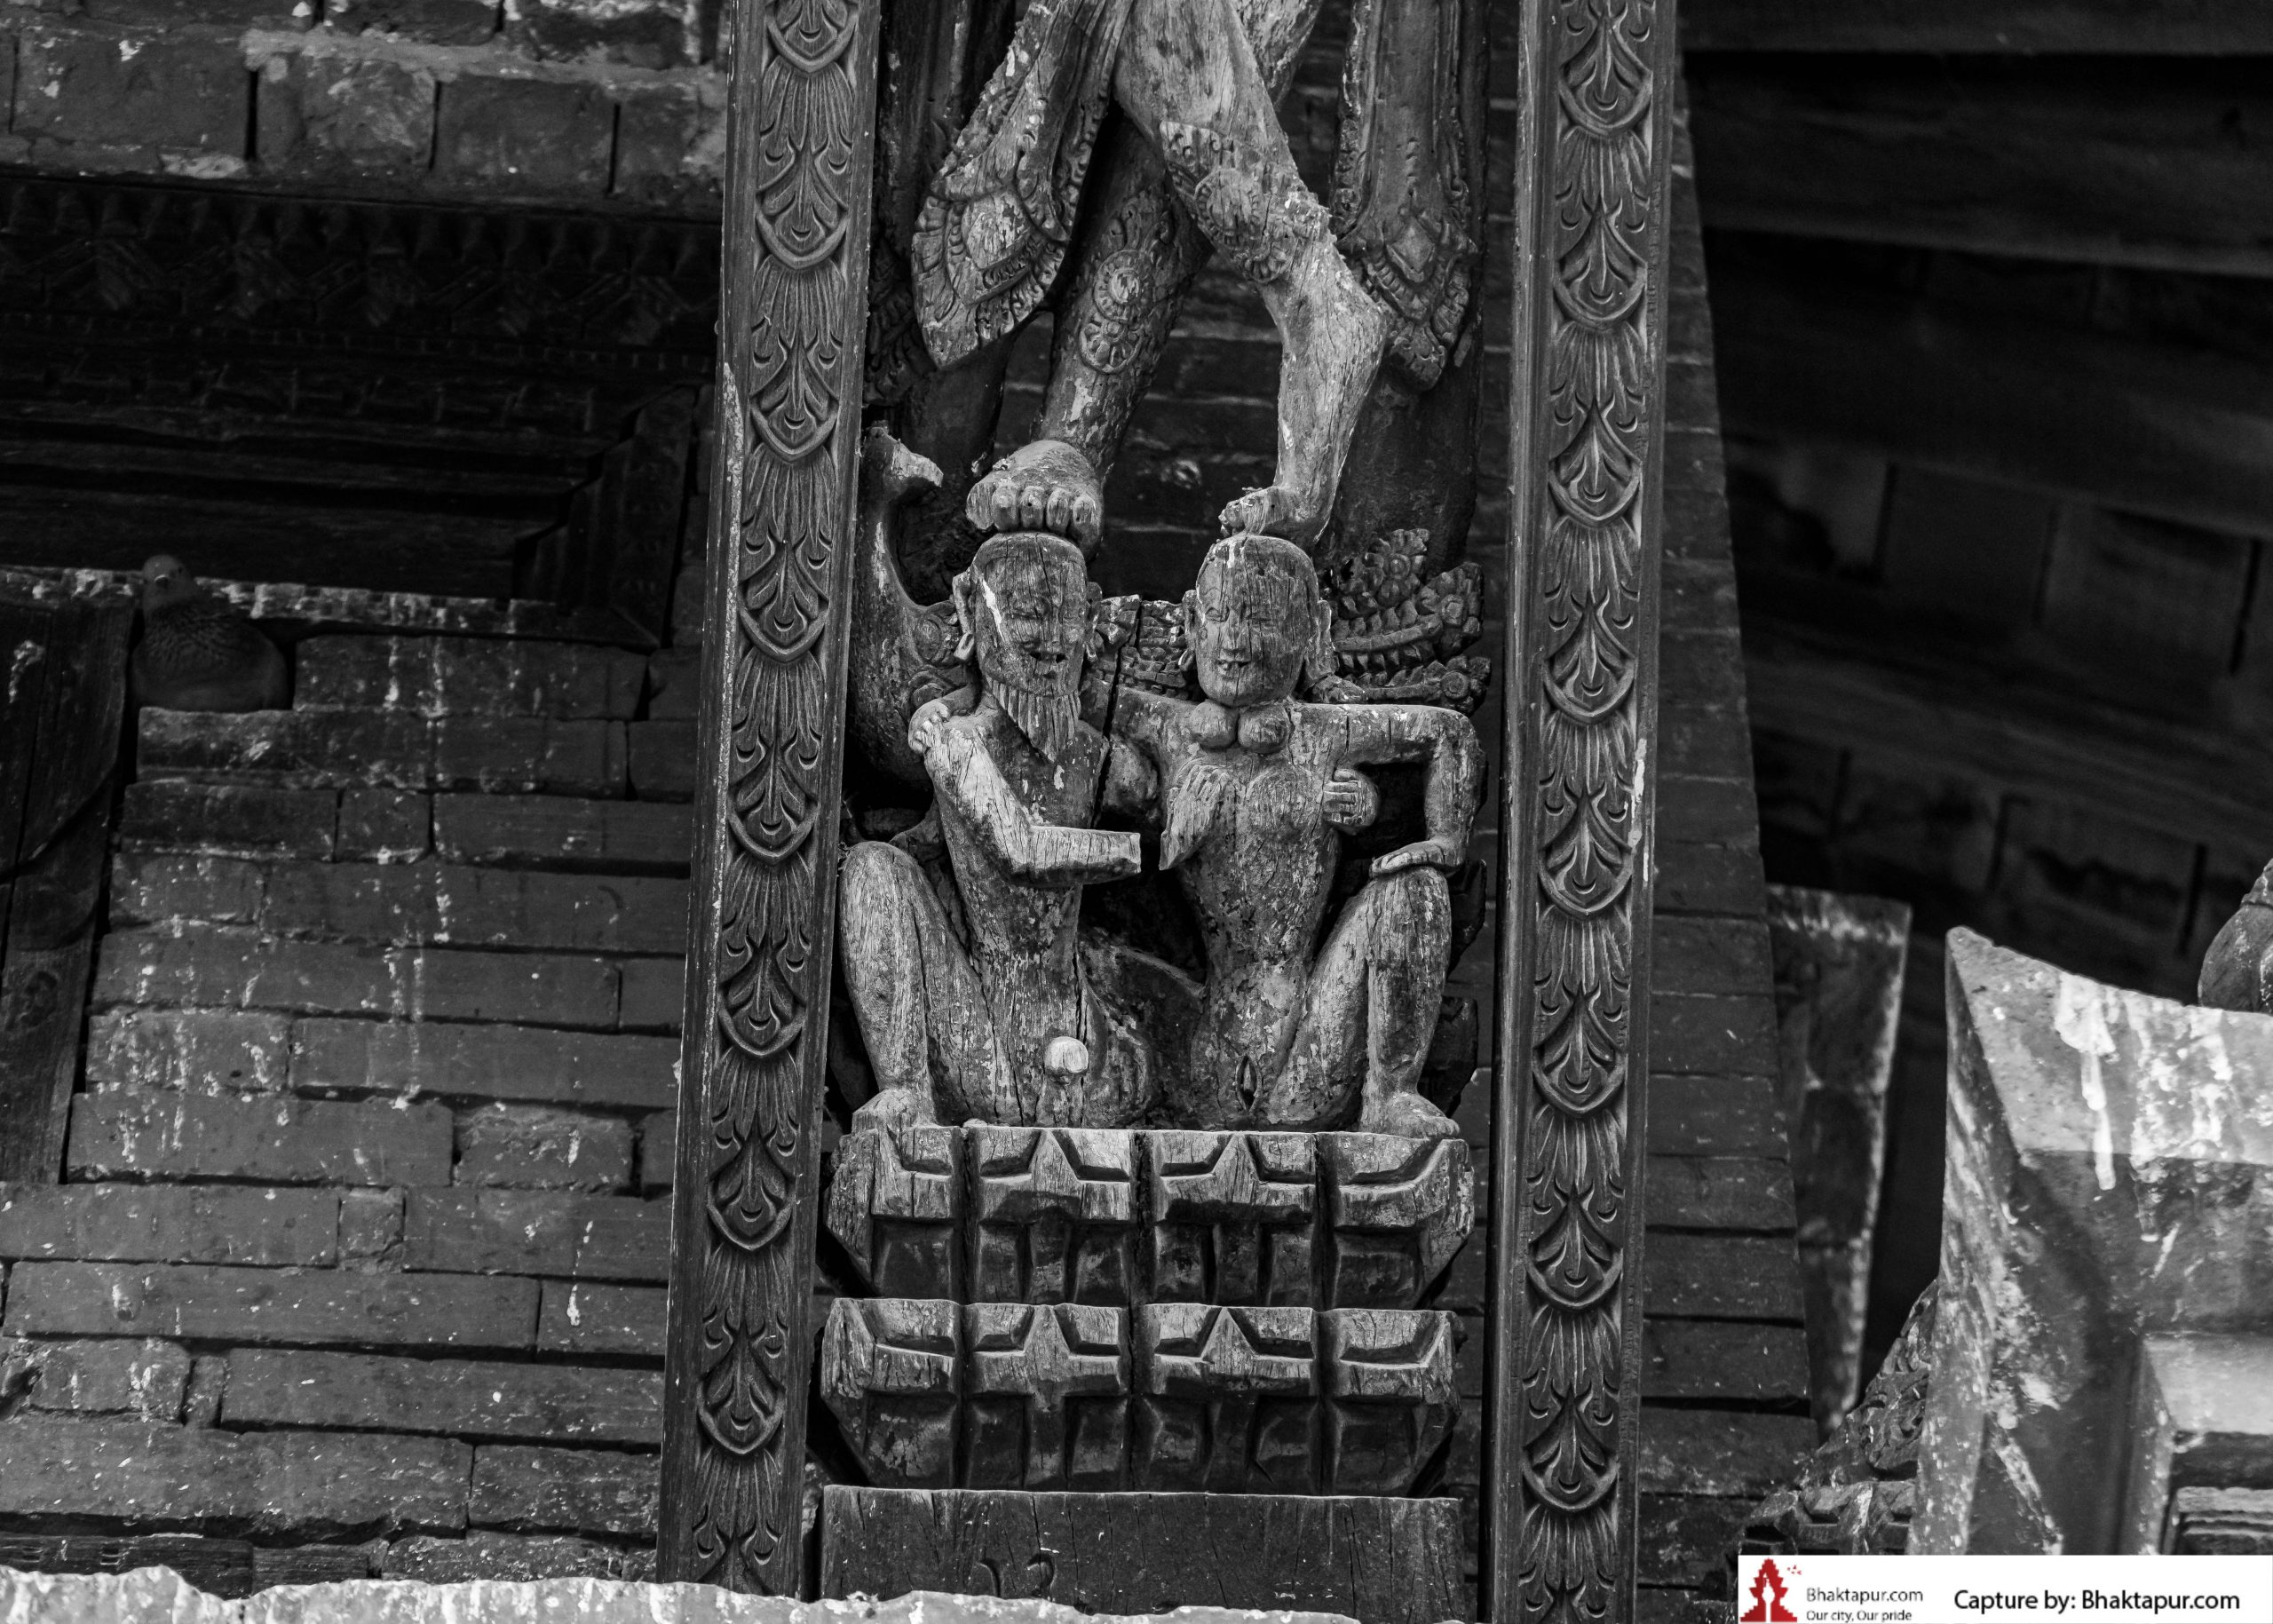 https://www.bhaktapur.com/wp-content/uploads/2021/08/erotic-carving-110-of-137-scaled.jpg